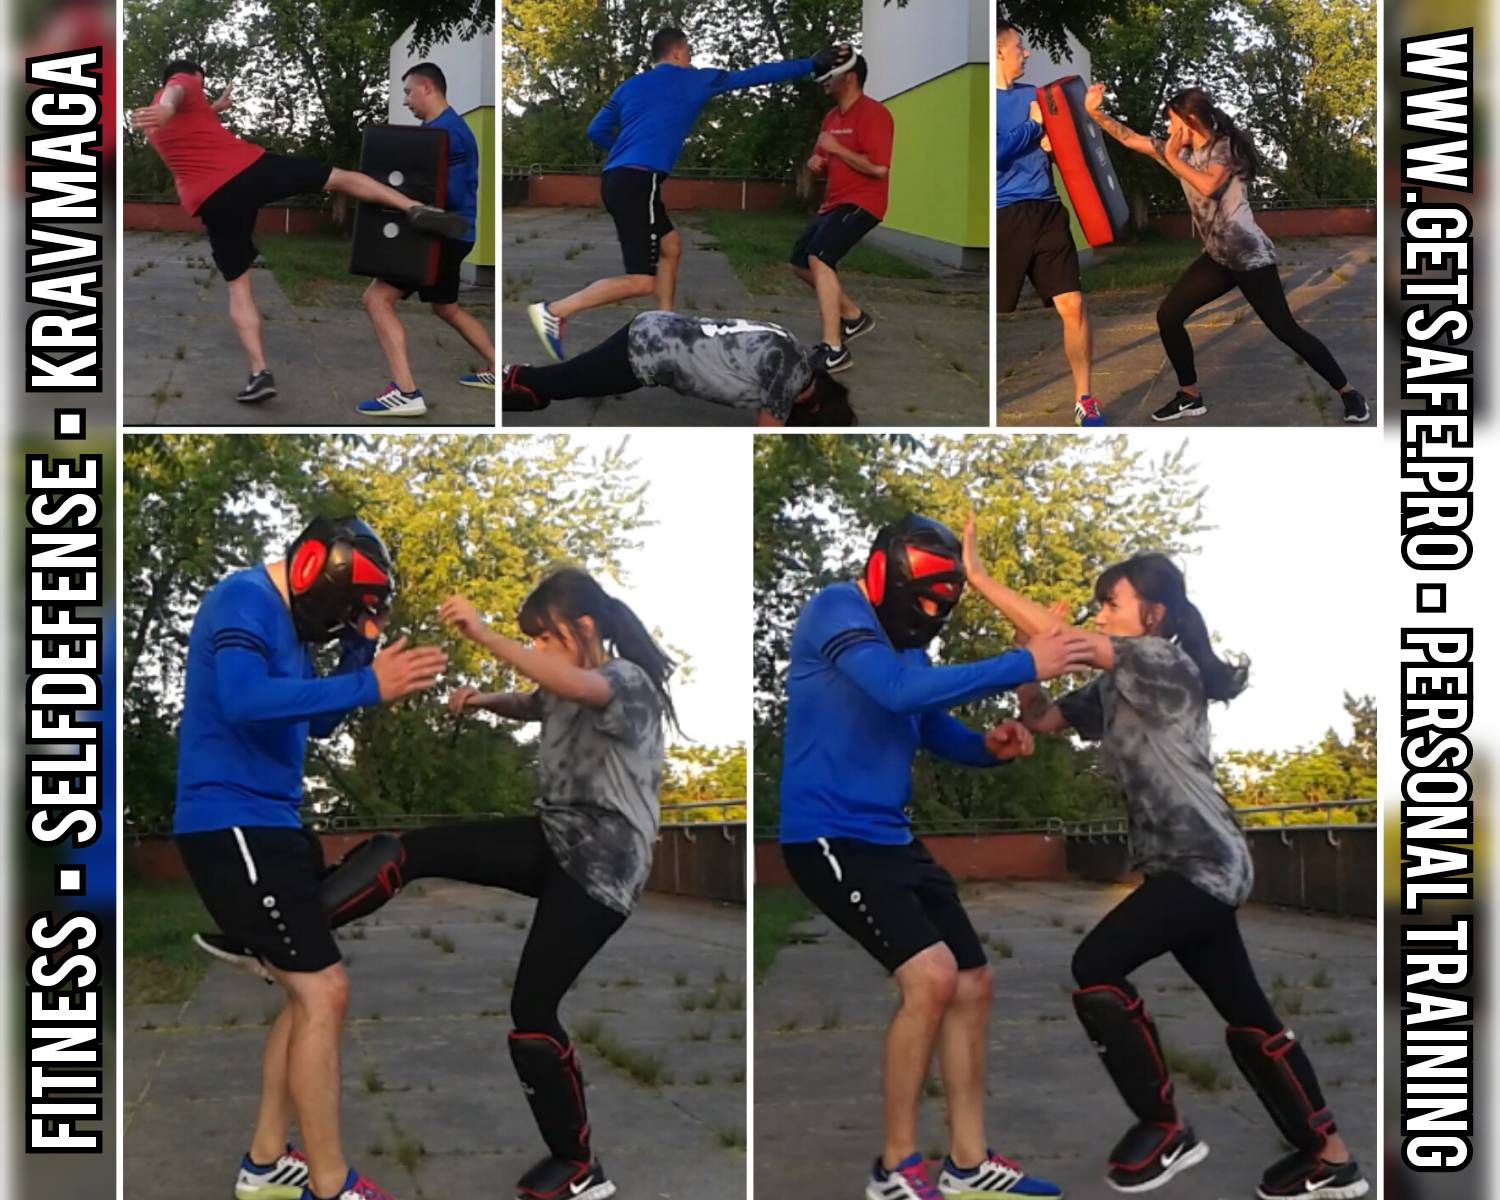 GETSAFEpro Krav Maga Wiesbaden Fitness Selbstverteidigung Training Outdoor (6)